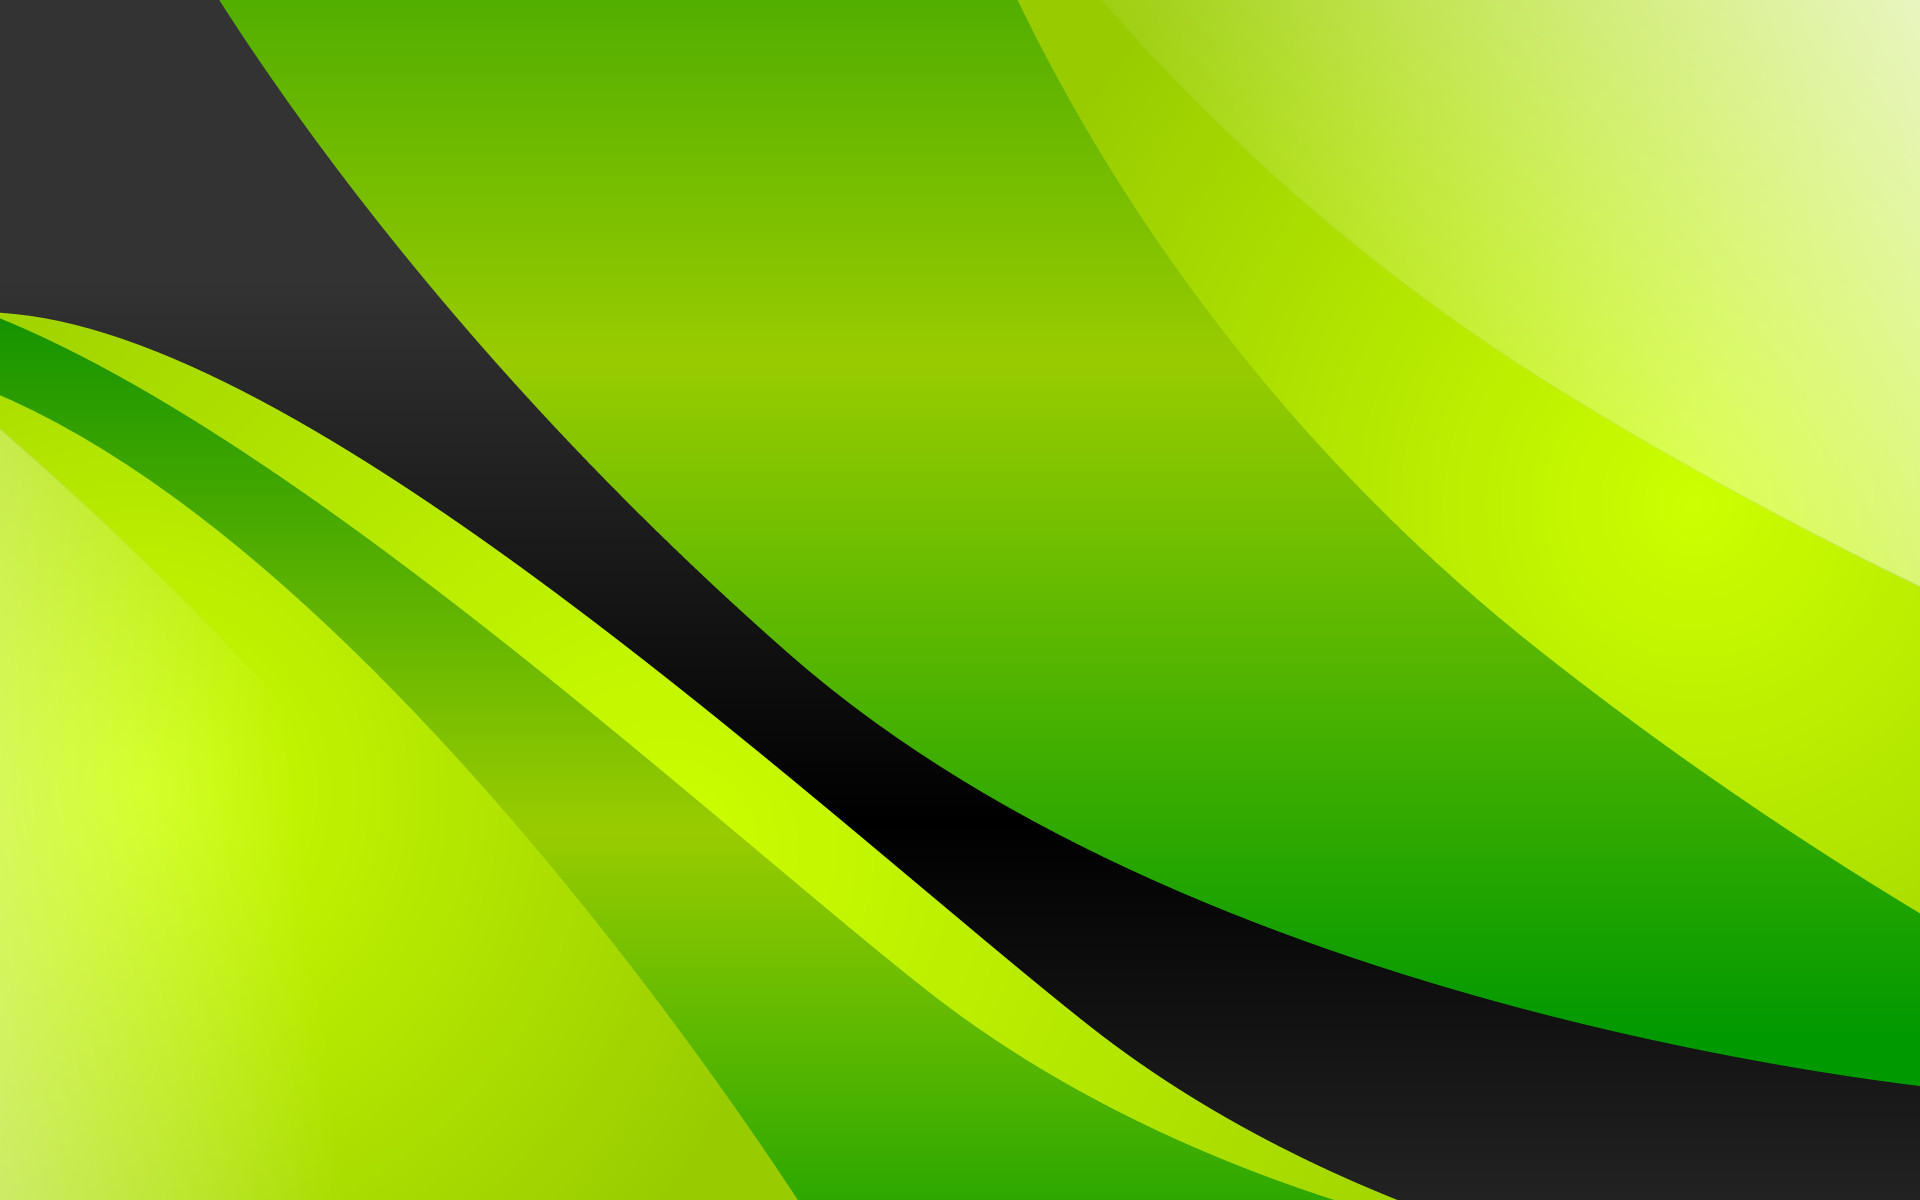 1920x1200 21 Green Abstract Wallpapers, Backgrounds, Pictures, Images .